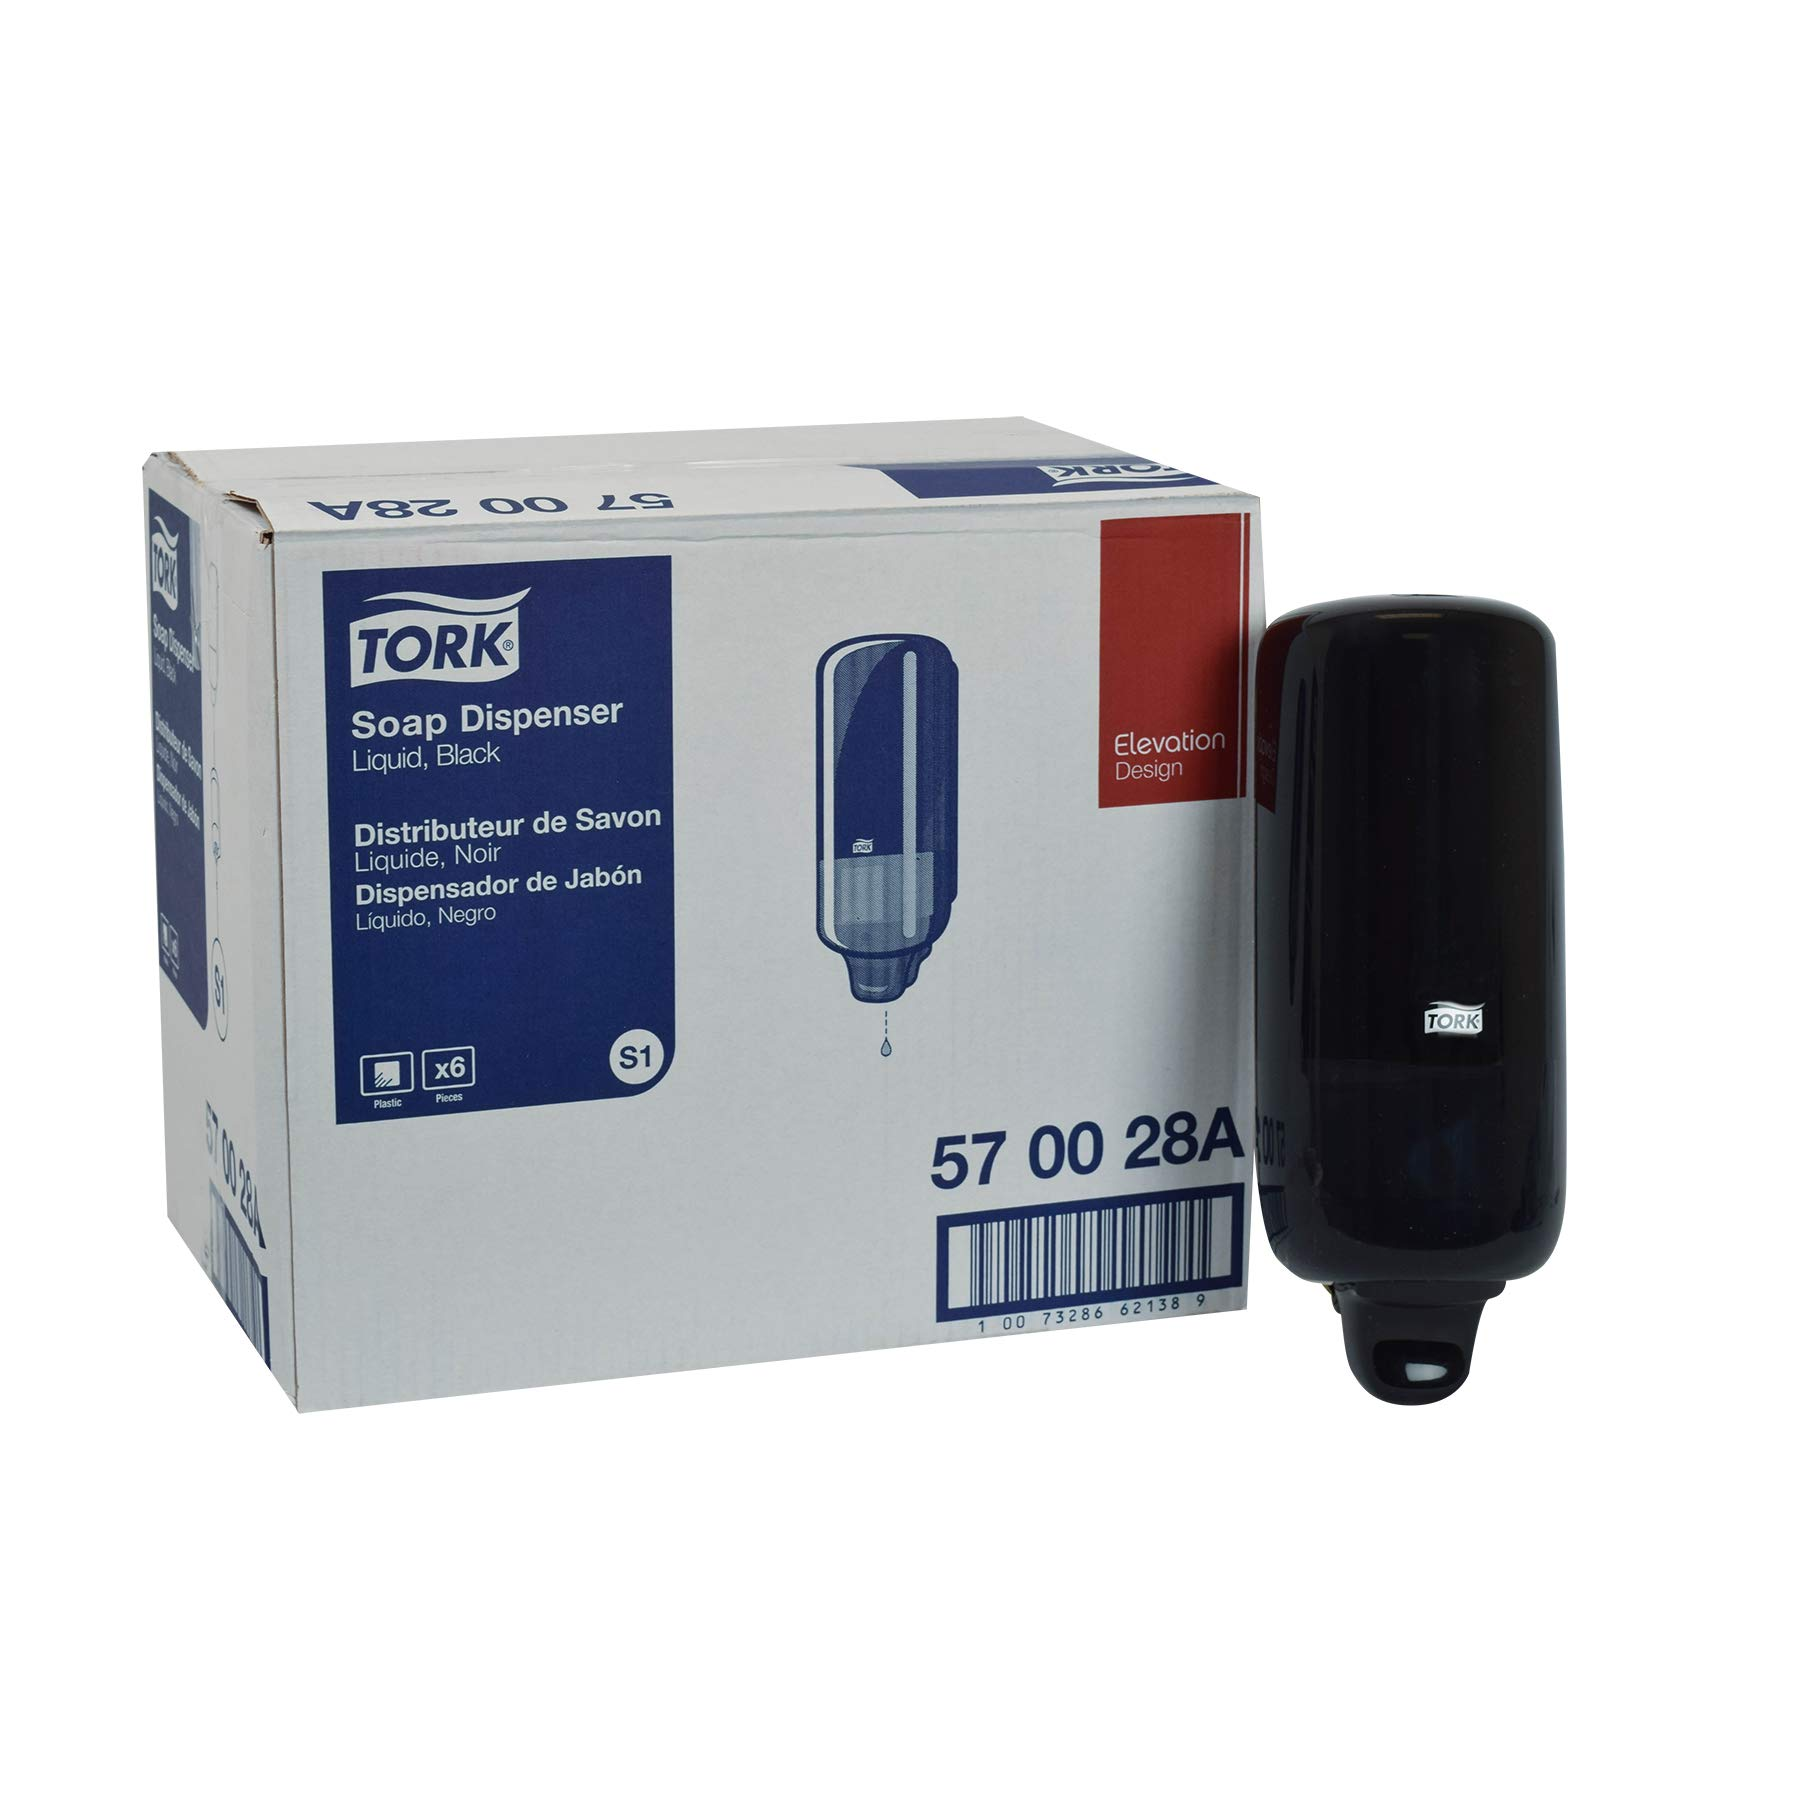 Tork 570028A Elevation Liquid Skincare Dispenser, 11.5'' Height x 4.4'' Width x 4.5'' Diameter, Black, for use with Tork 400011, 400012, 400013, 400014 or 400016